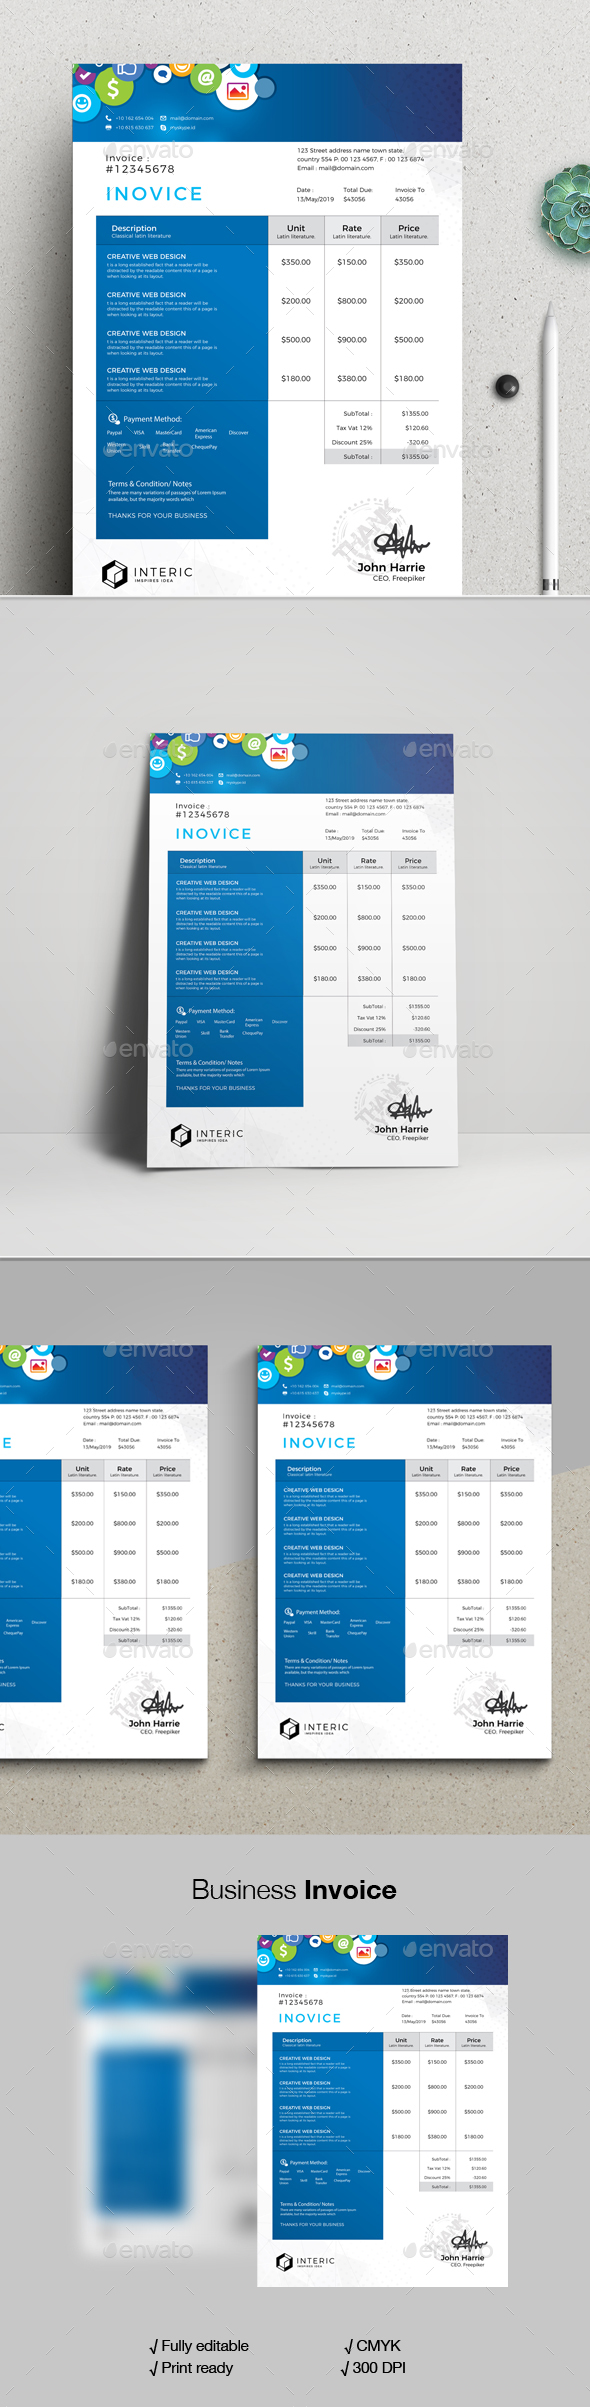 Social Media Invoice Template - Stationery Print Templates